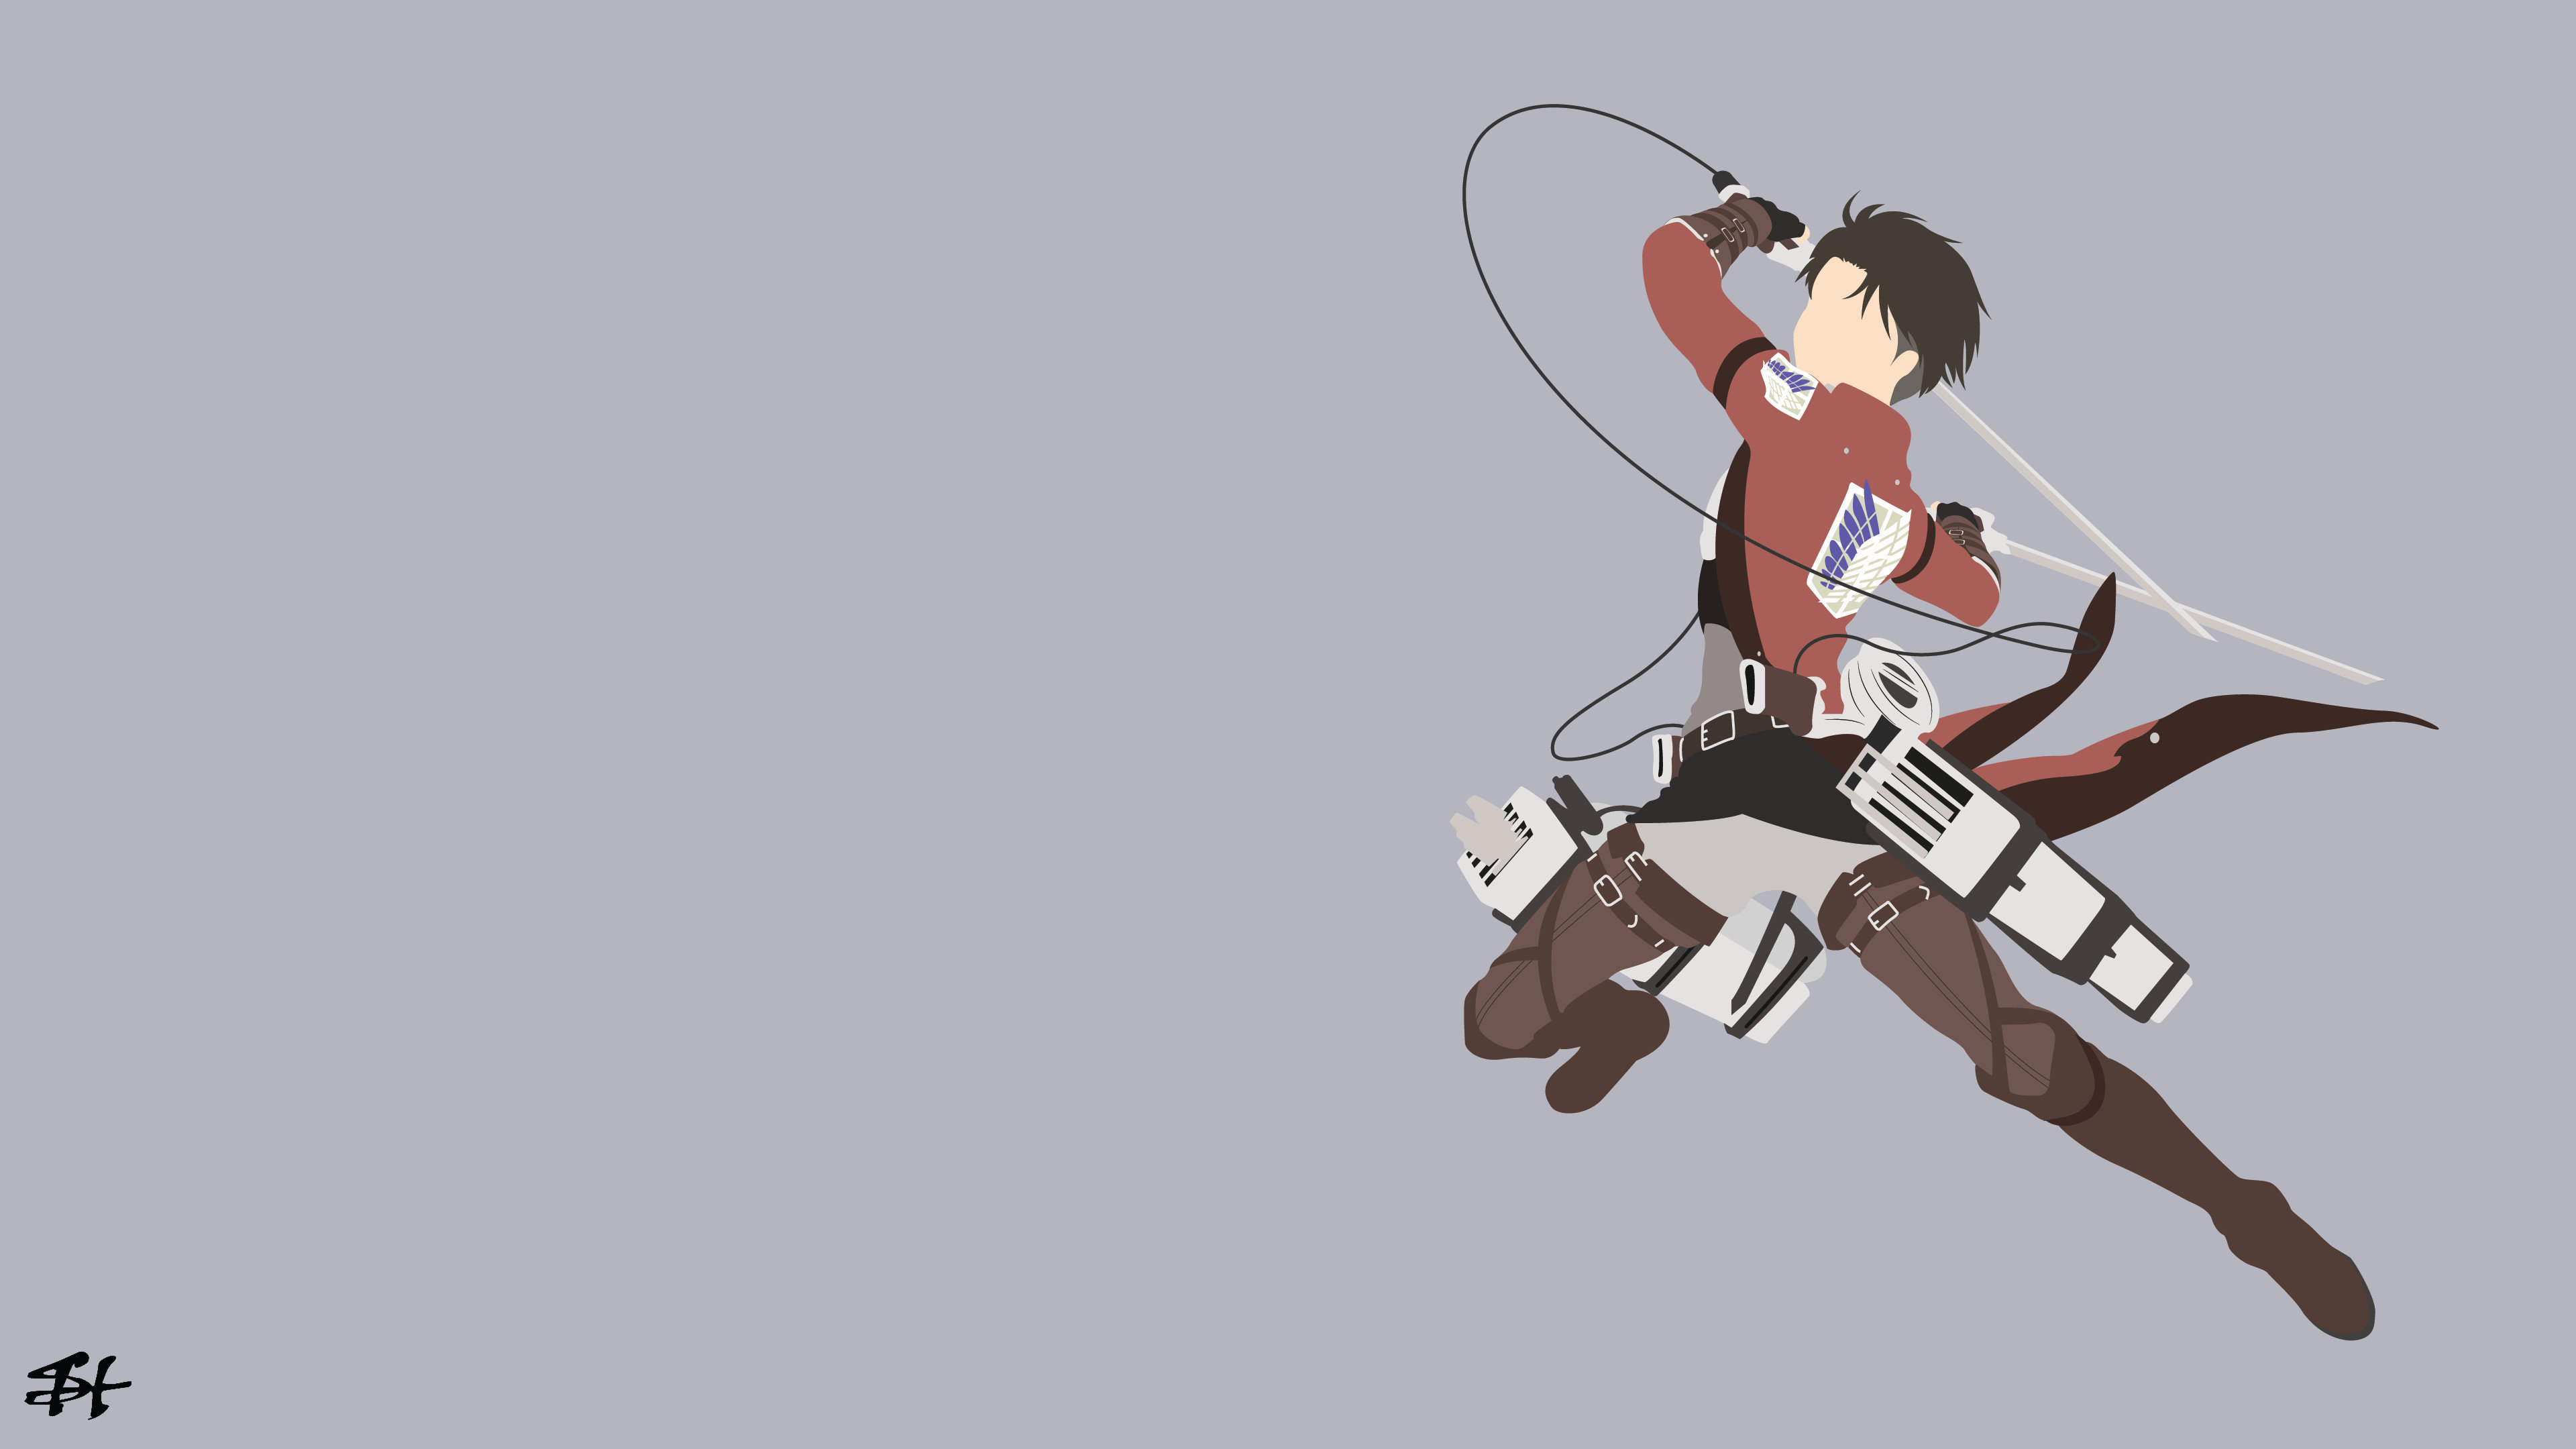 Volleyball Quotes Wallpapers Levi Ackerman Wallpapers 3840x2160 Ultra Hd 4k Desktop